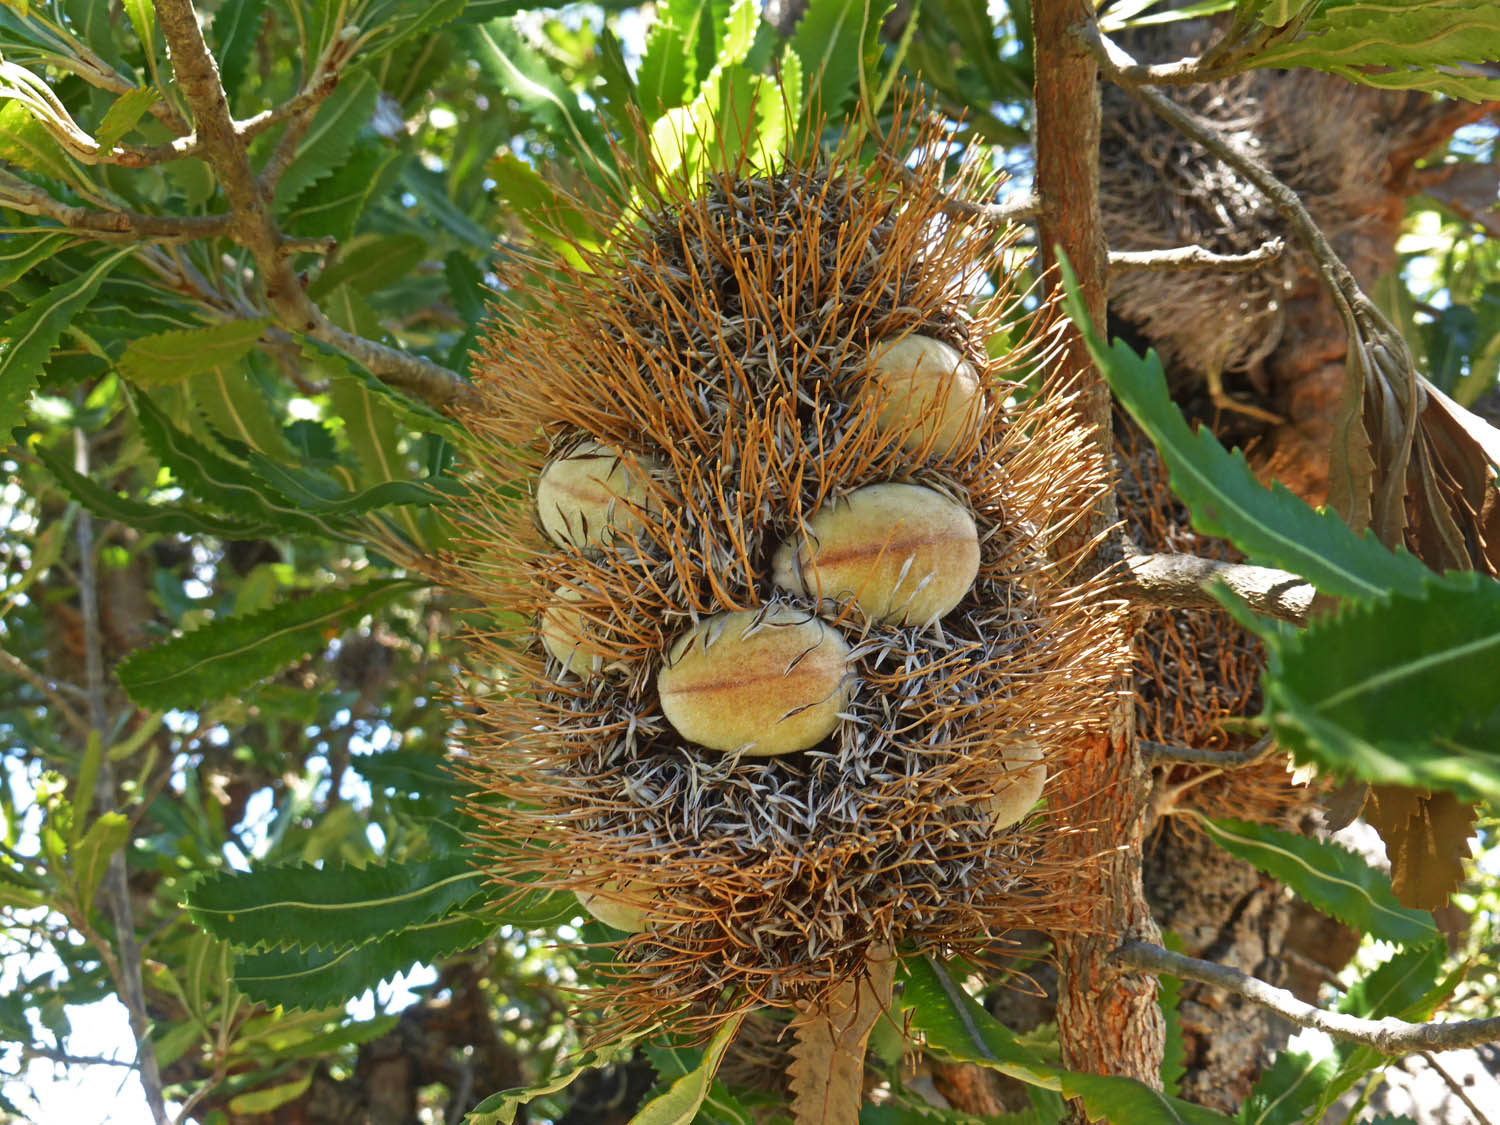 A banksia flower with seed pods